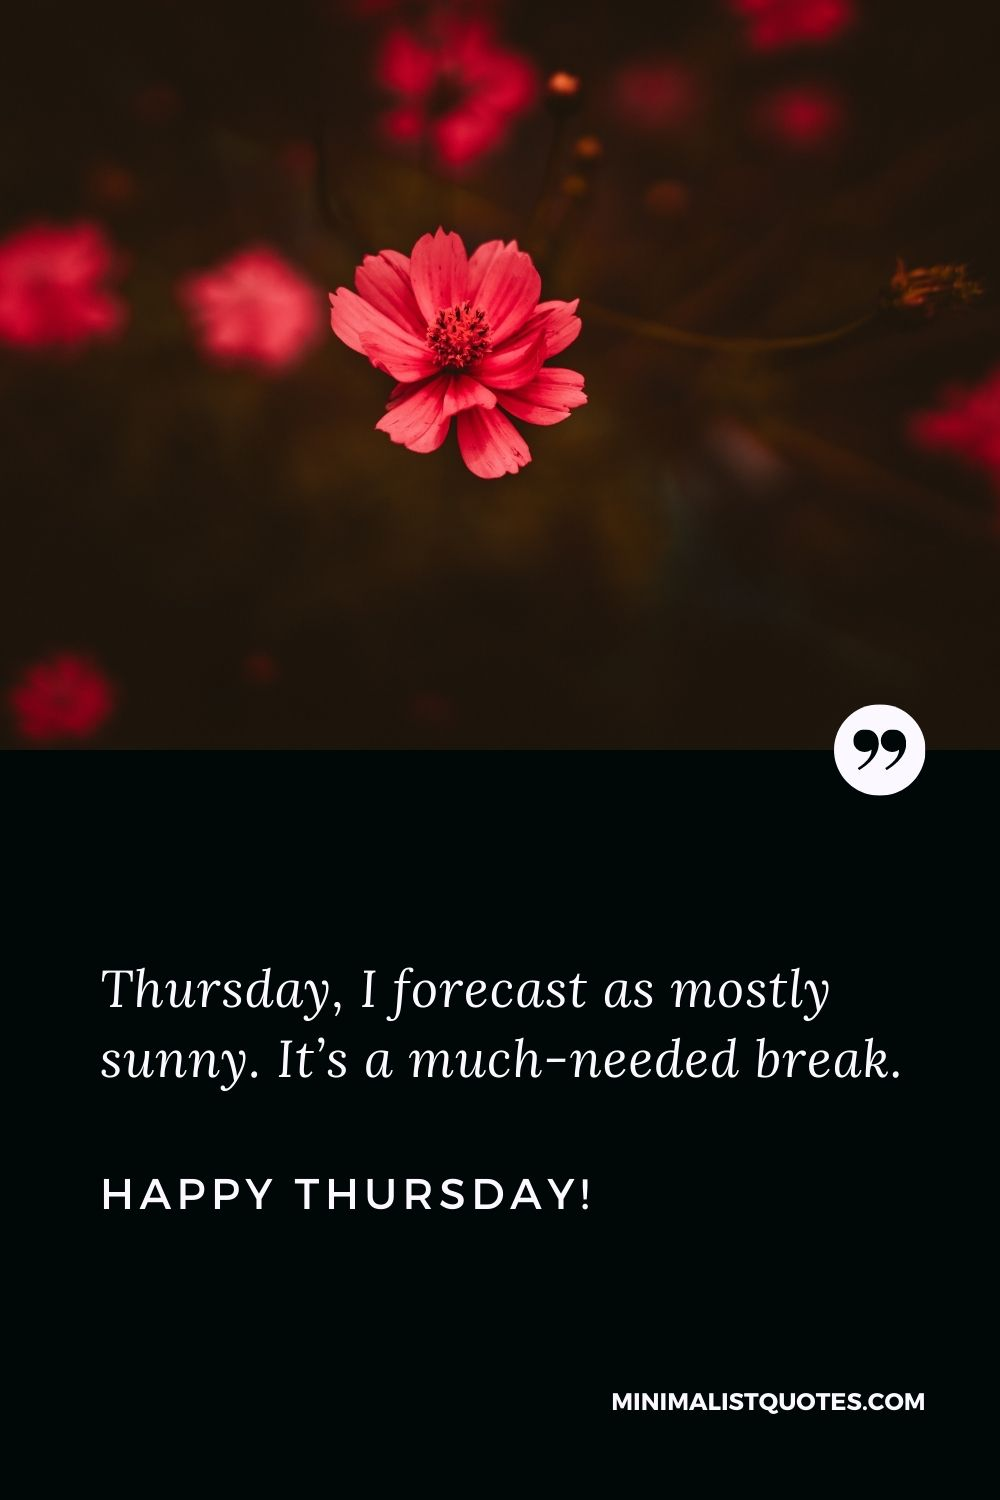 Thursday quotes of the day: Thursday, I forecast as mostly sunny. It's a much-needed break. Happy Thursday!